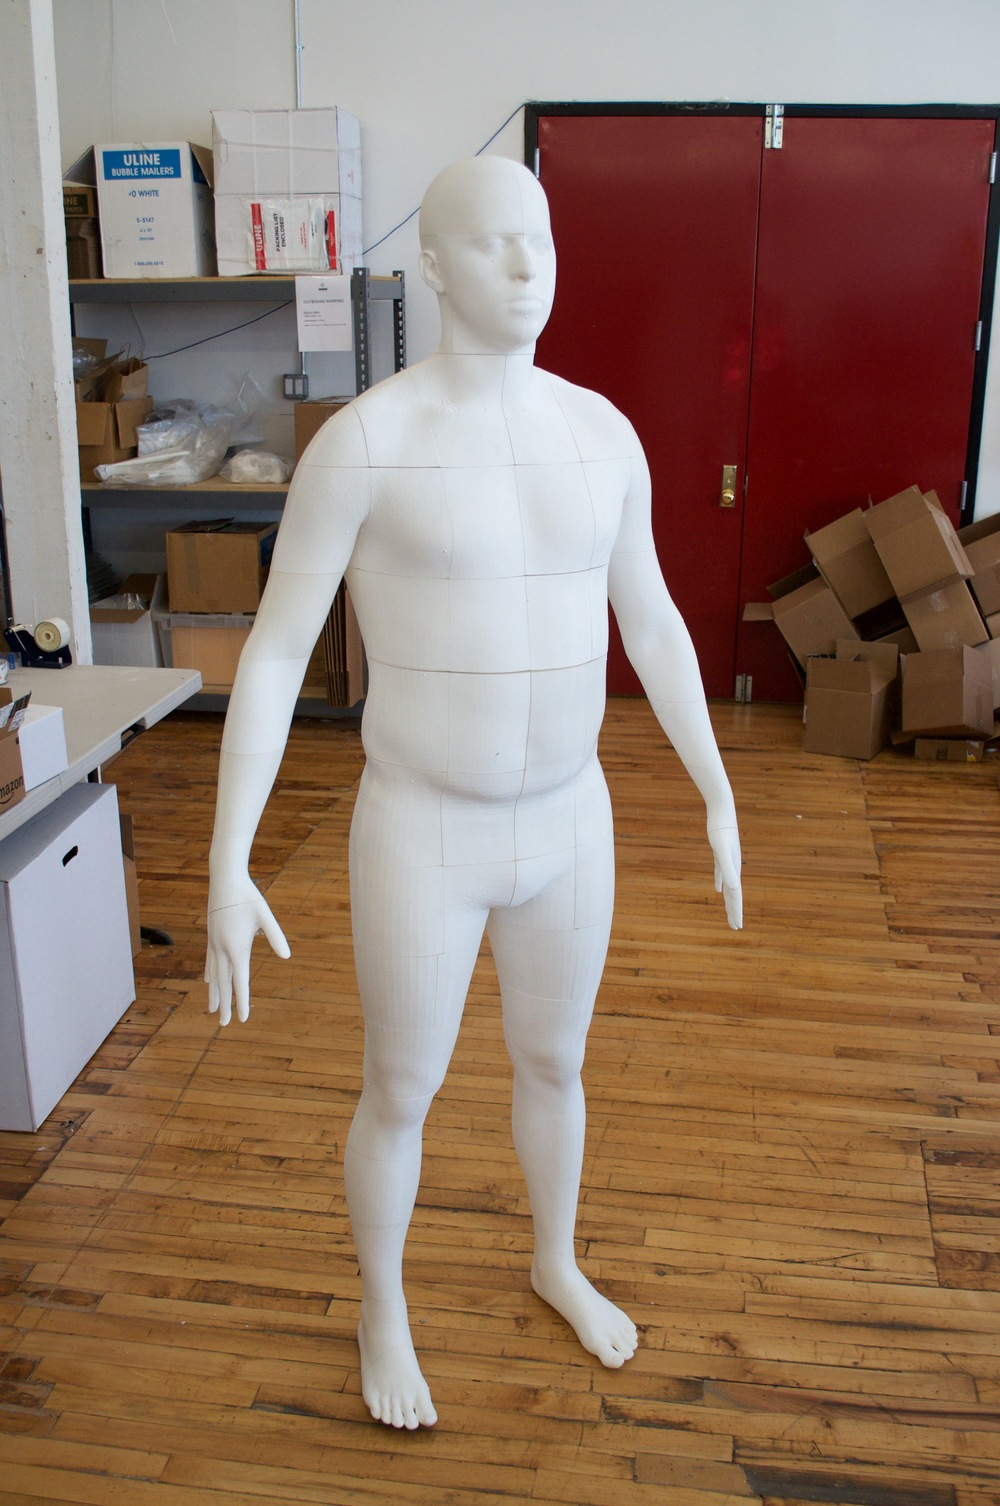 A fully assembled, life-size 3D print of a person